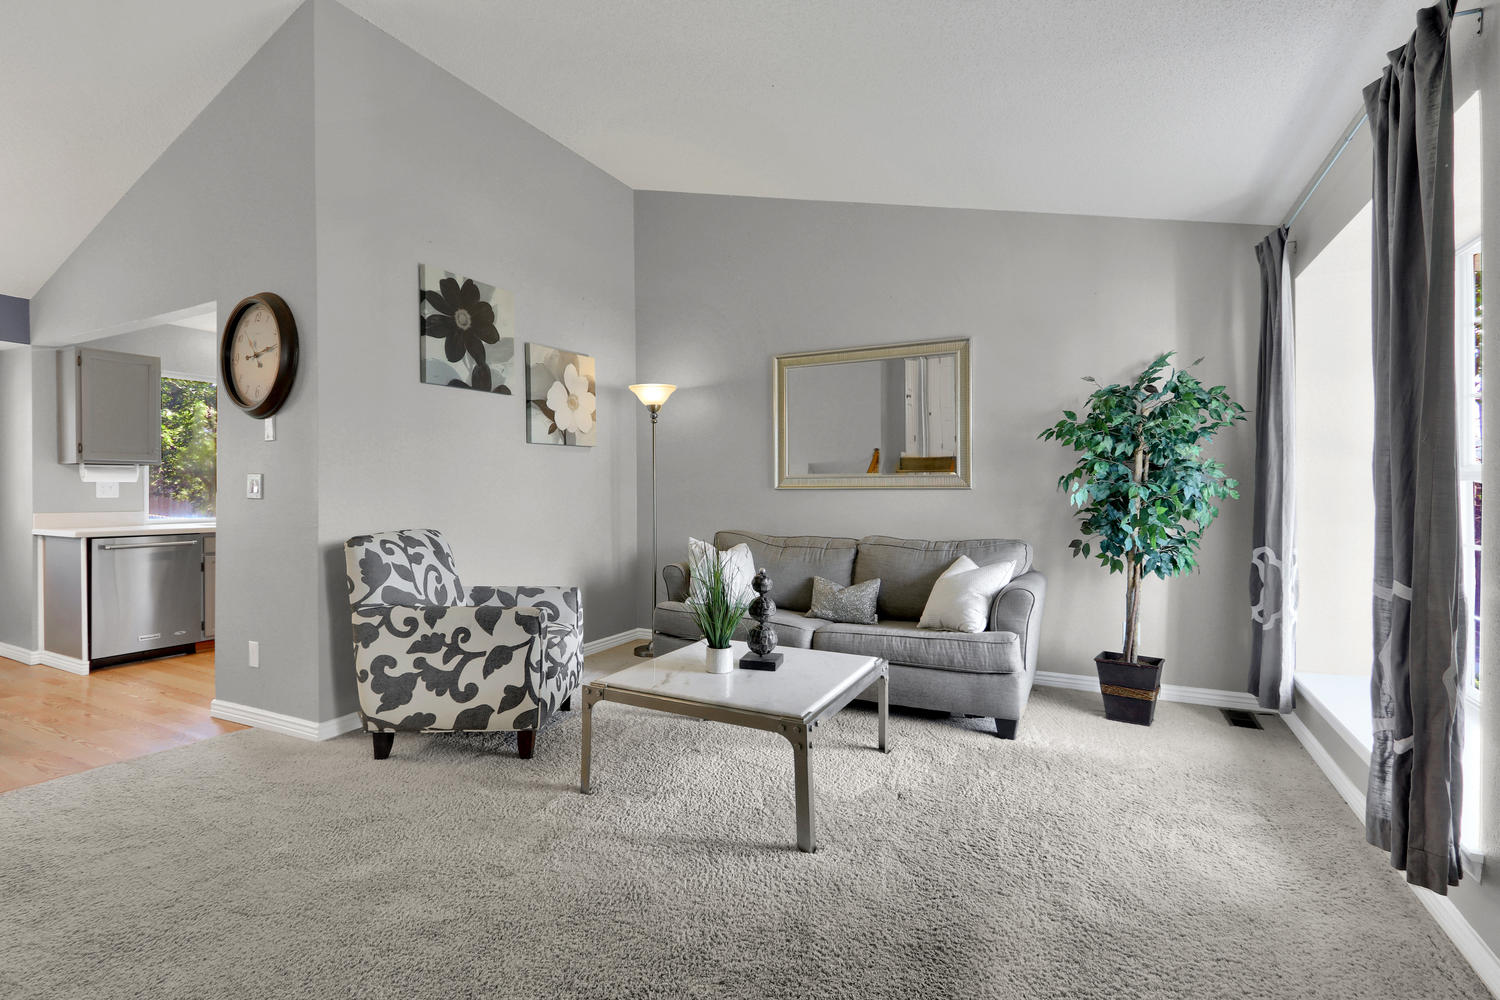 11246 W 104th Ave Westminster-large-005-005-Living Room-1500x1000-72dpi.jpg